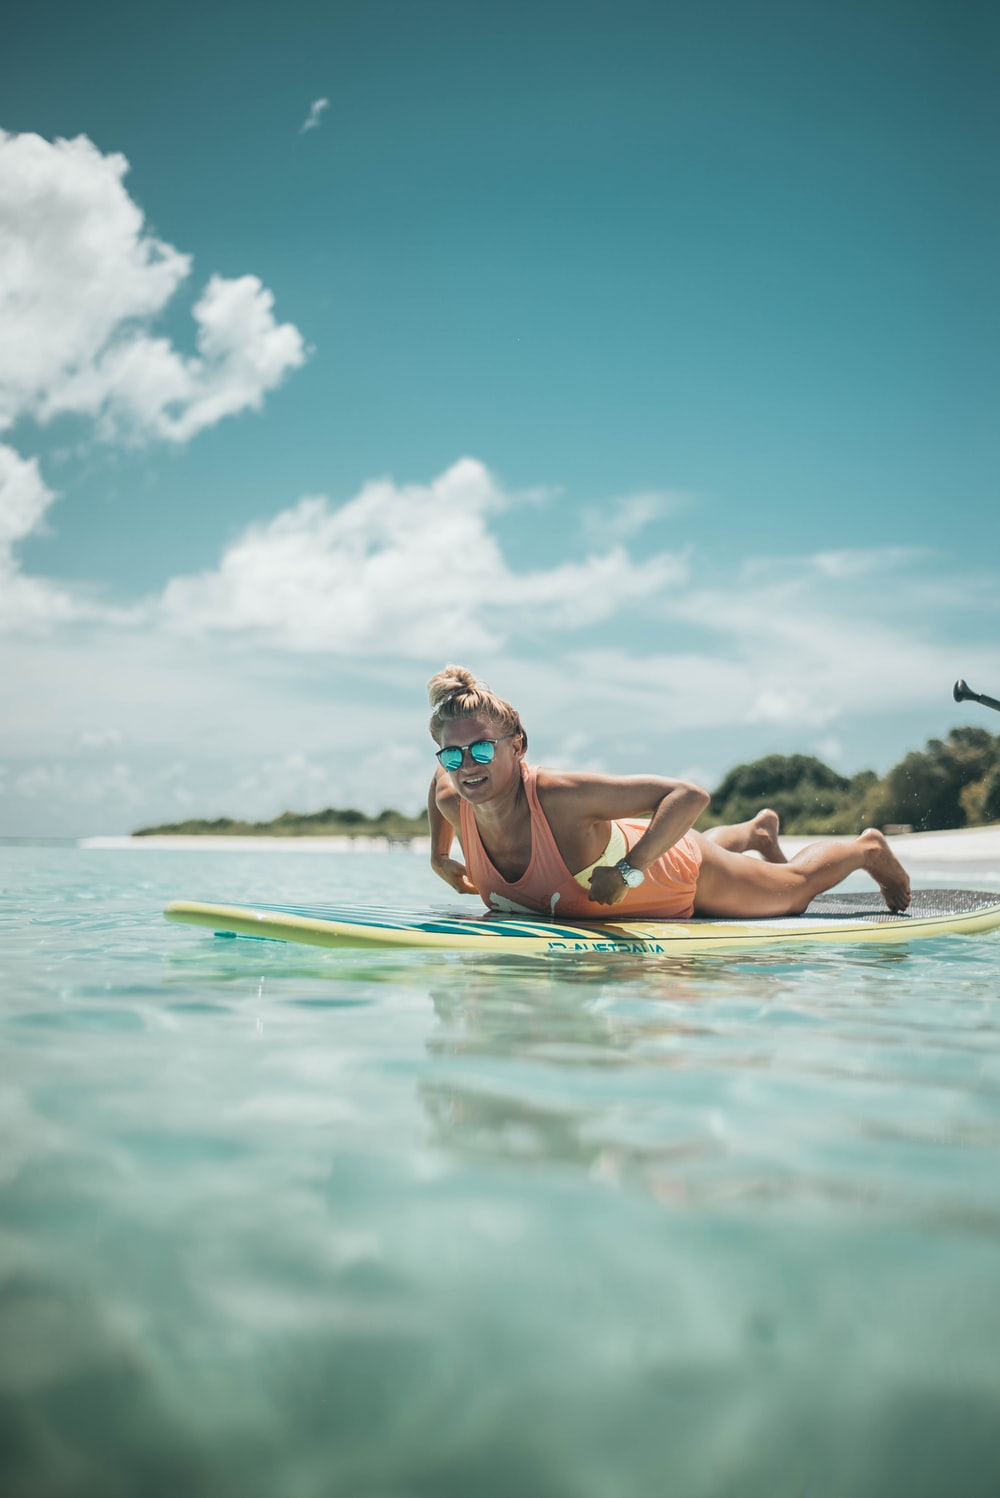 woman prone lying on yellow surfboard during daytime